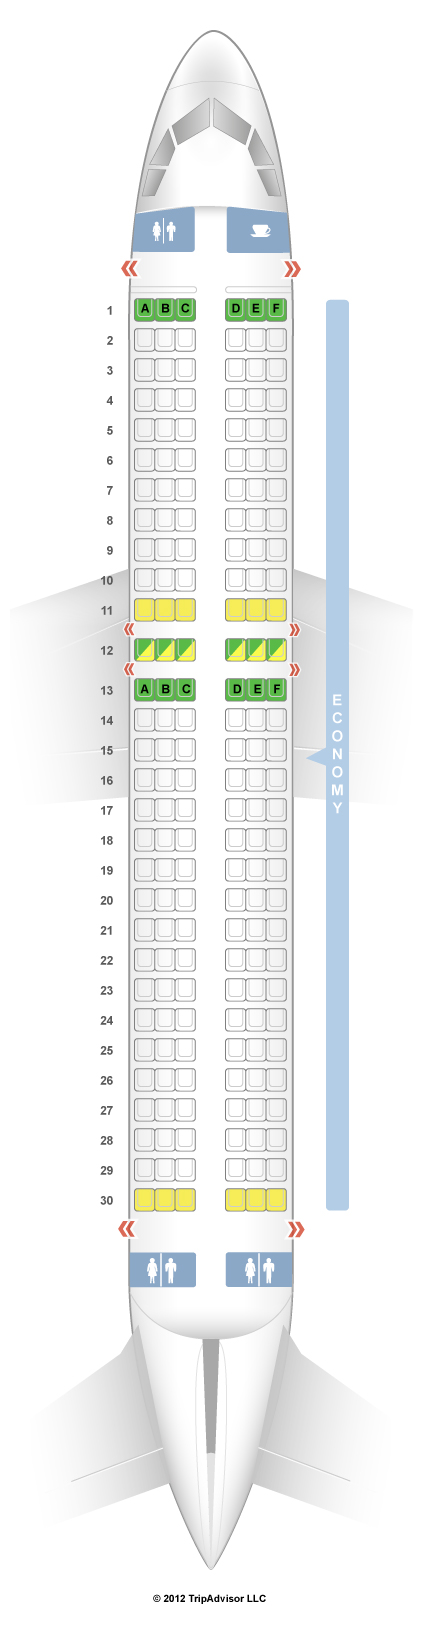 virgin atlantic seating chart with Tiger Airways A320 on 737 900 Seat Map together with Seat Map Boeing 747 400 Virgin Atlantic Best Seats In Plane besides Oman Air Boeing 787 in addition Virgin Americas Ipo Could Not Be Better Timed in addition The Best Seats In Economy Class On Virgin Australia S Boeing 737 800.